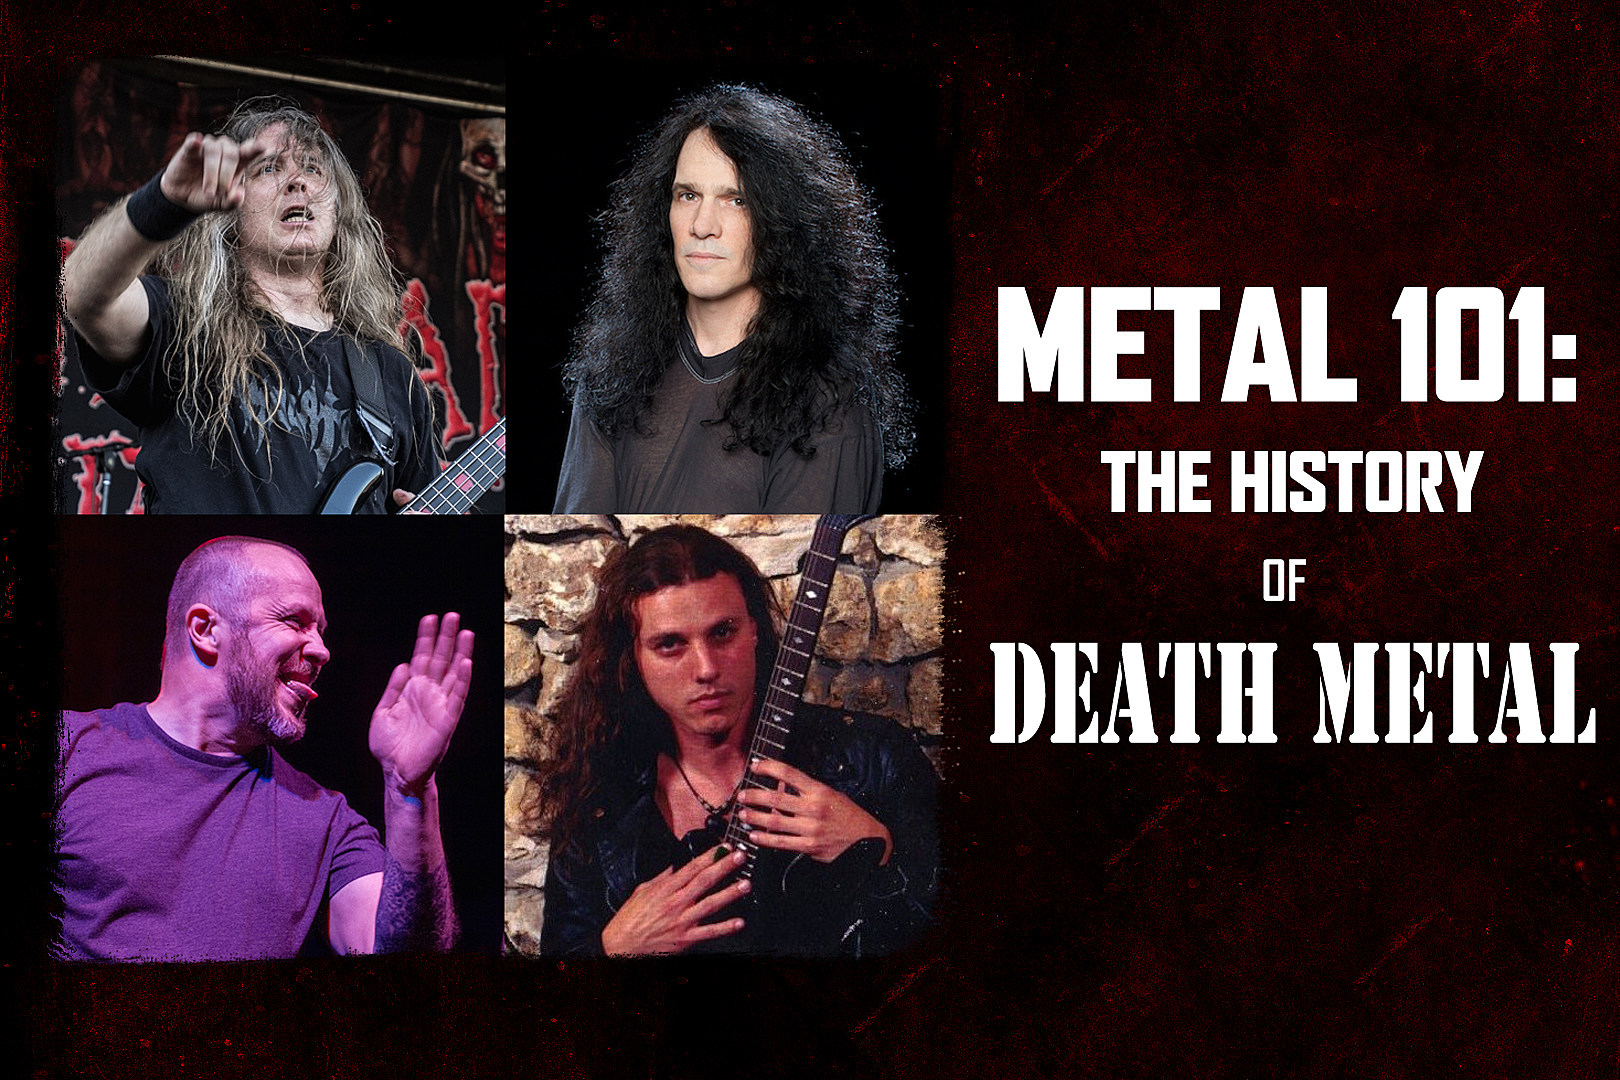 Heavy Metal 101: The History of Death Metal